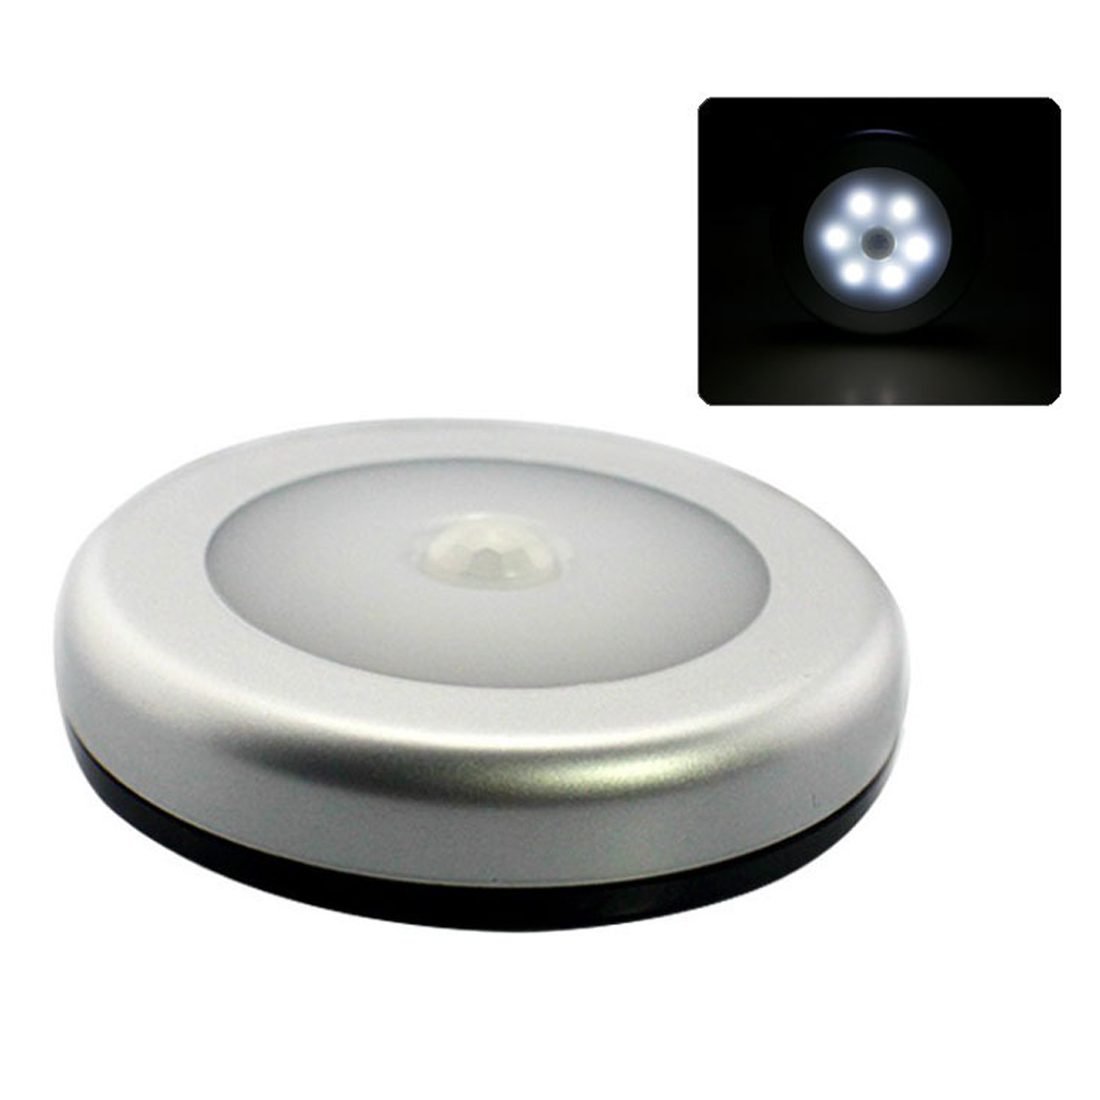 Induction Lamp Body Motion Sensor 6 LED Wall Lamp Night Light Corridor Cabinet LED Search Lamp Home Electronic Accessorie